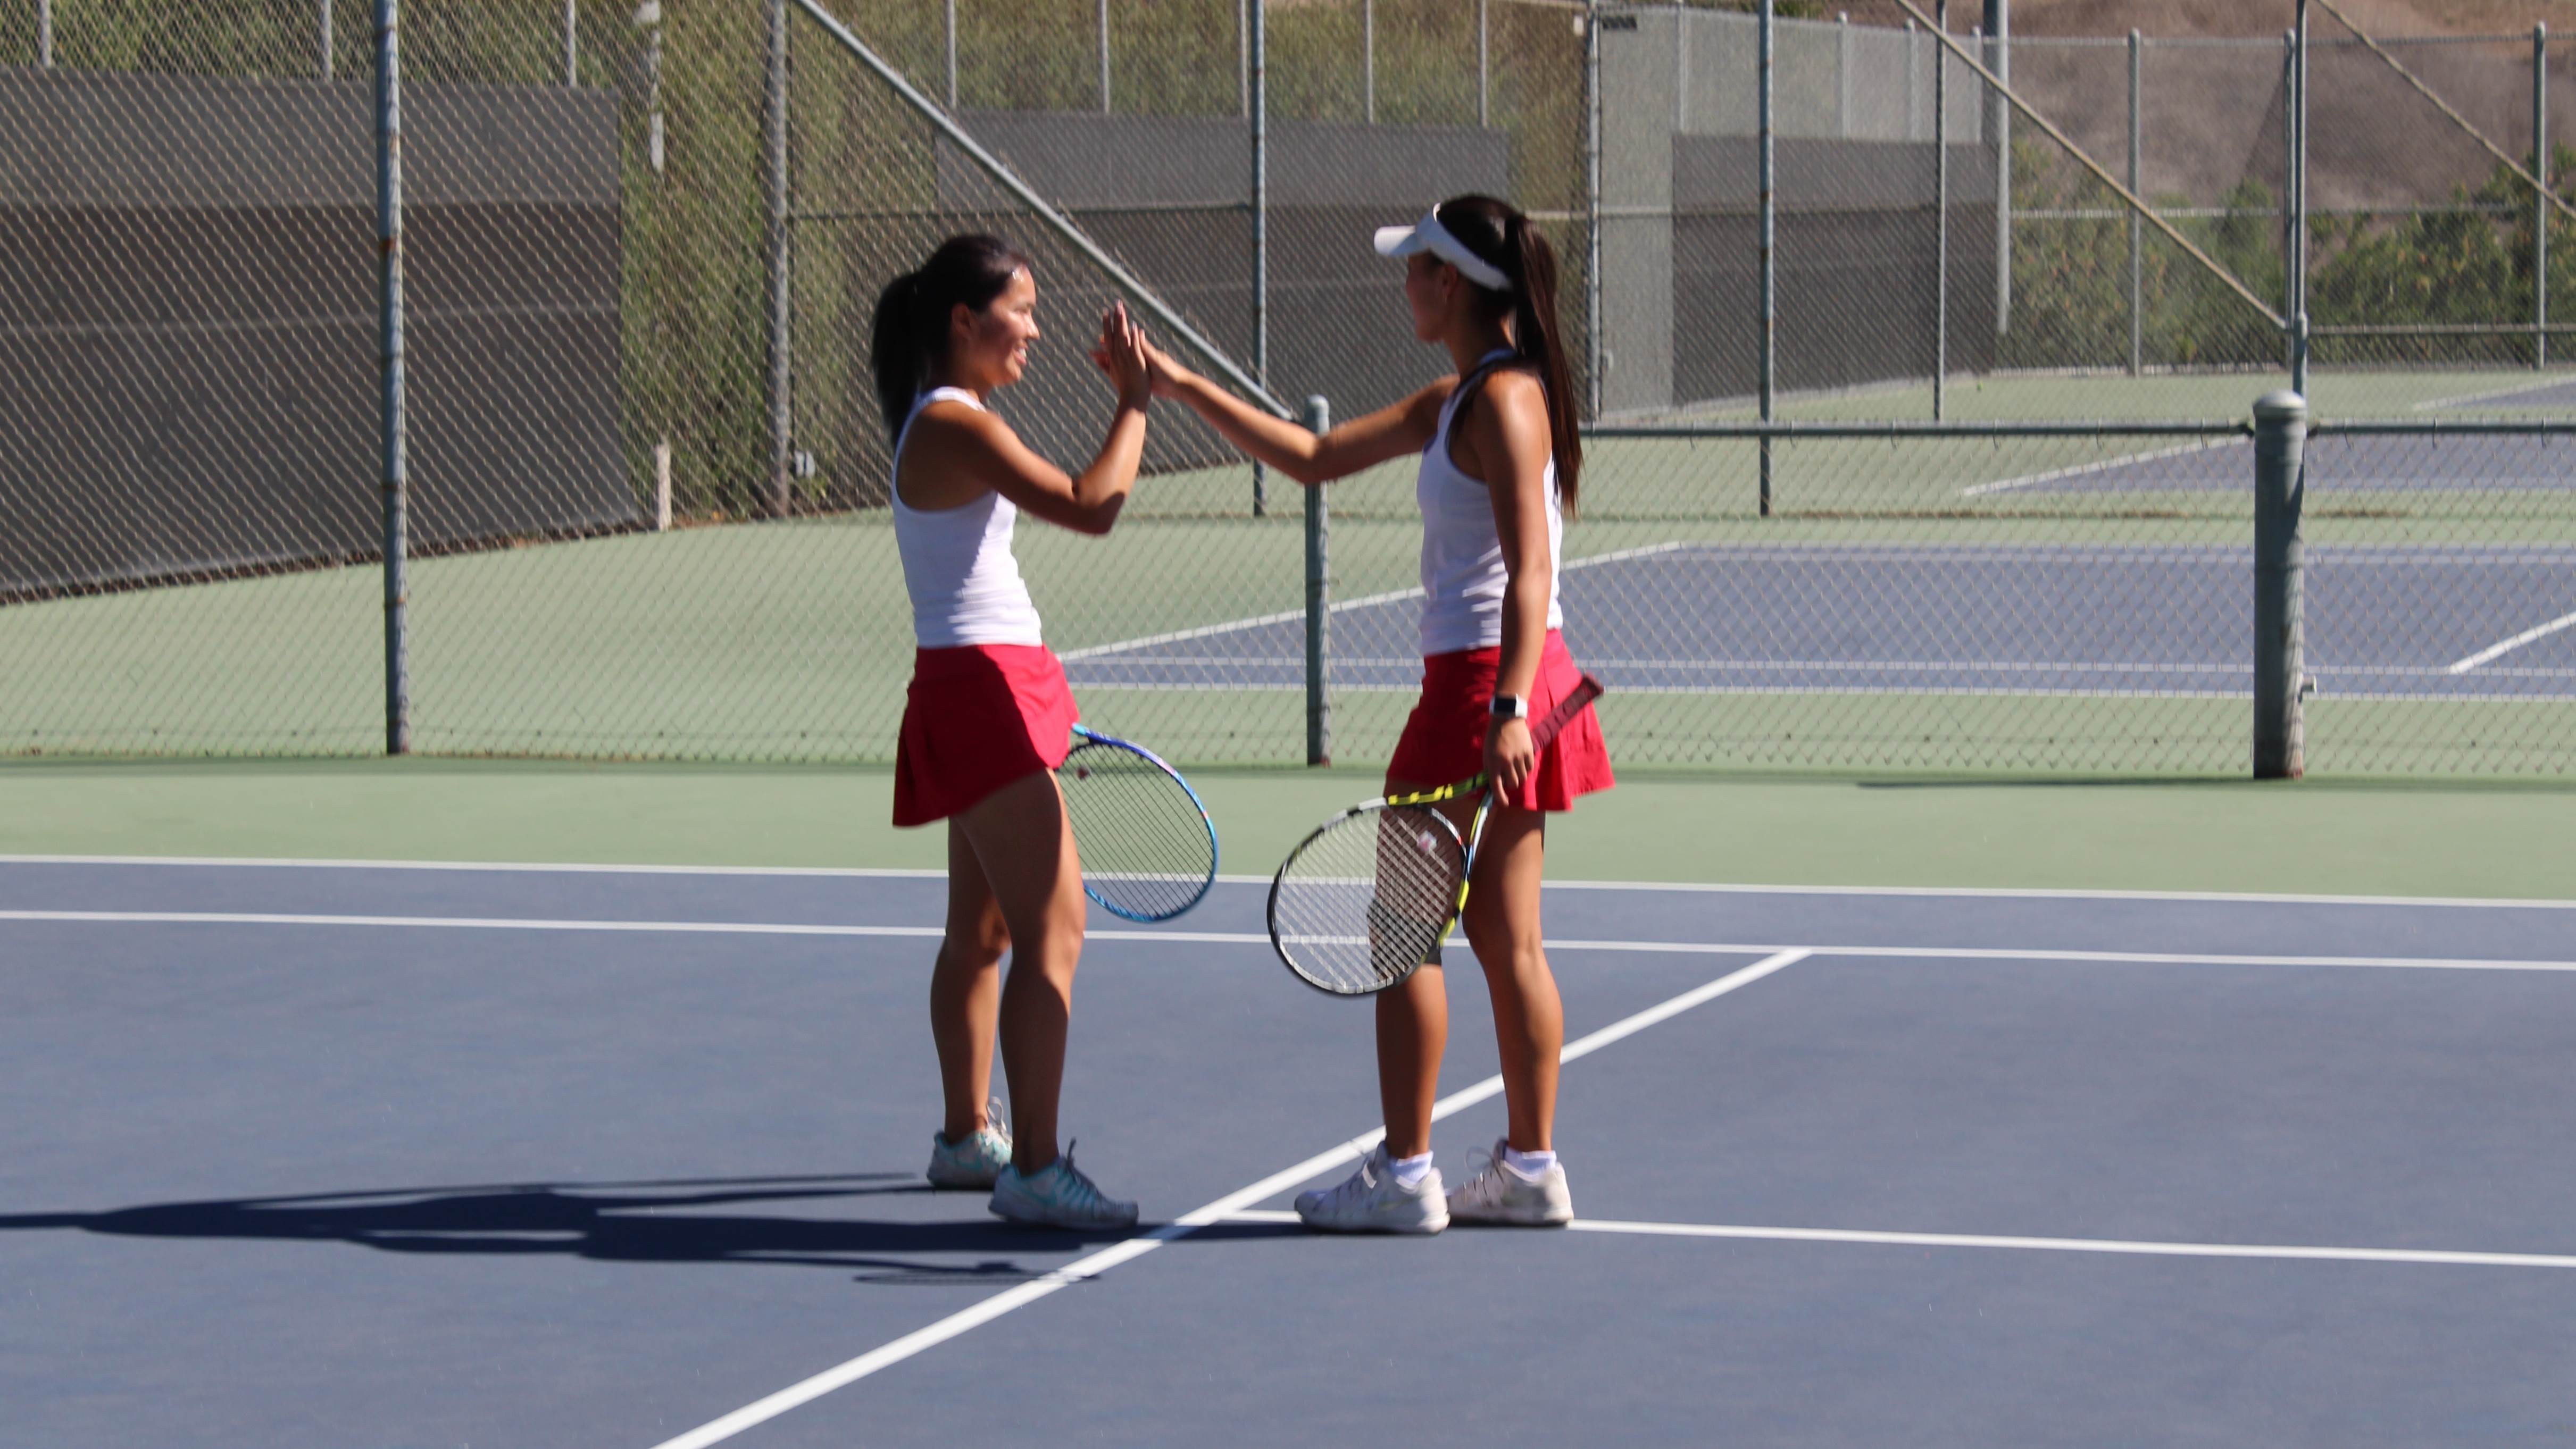 girls high-fiving on tennis court